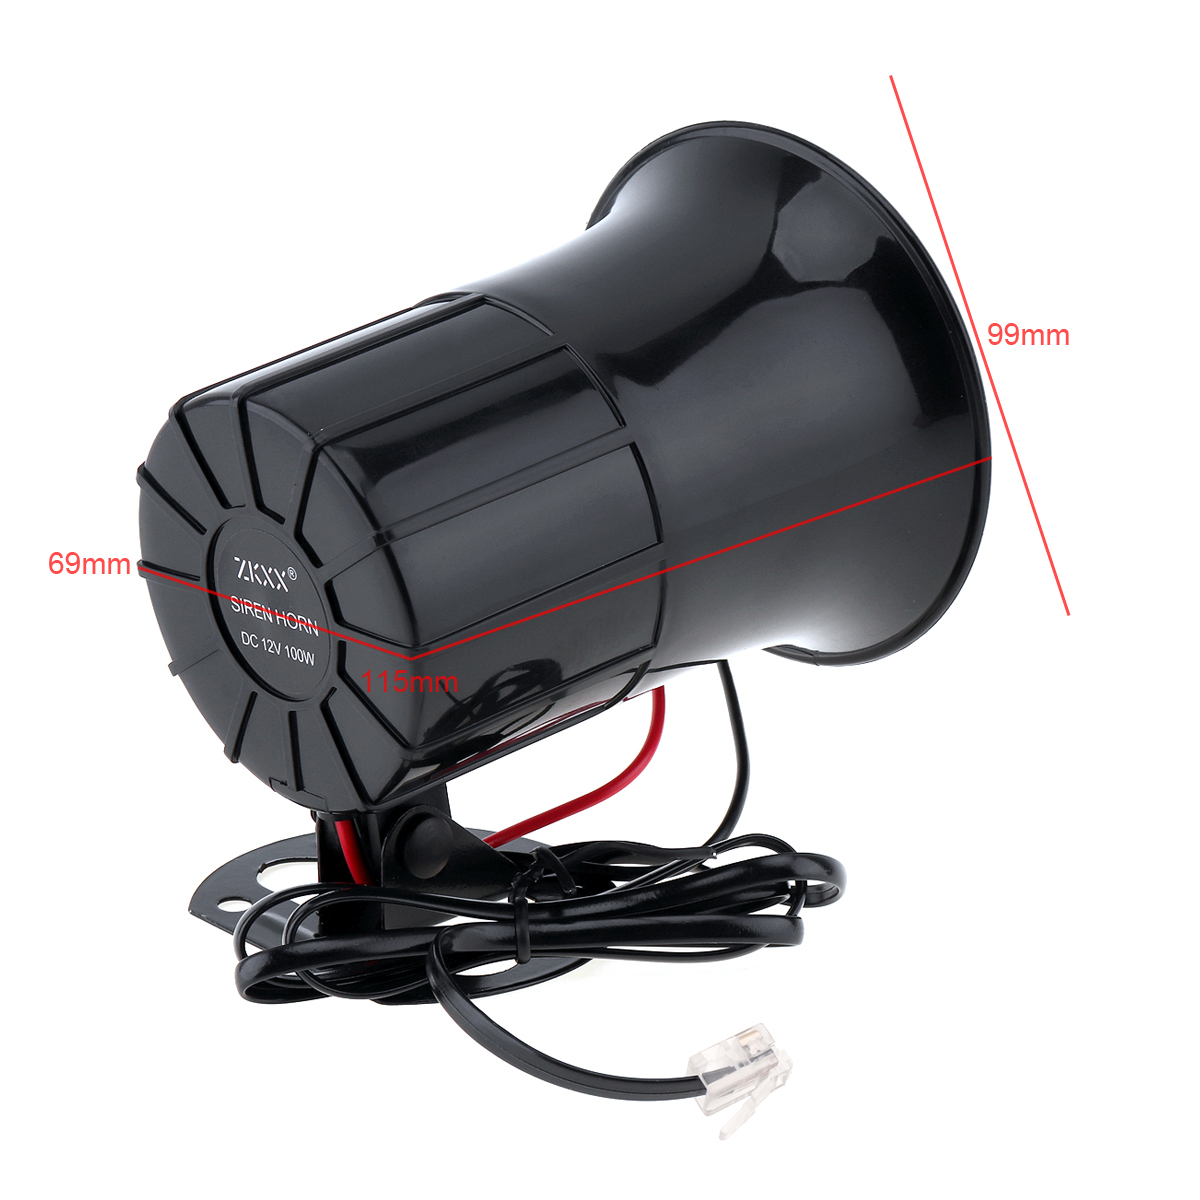 Image 2 - 6 Sound 100W Tone Loud Horn Motorcycle Auto Car Vehicle Truck Speaker Warning Alarm Siren Police Fire Ambulance Horn Loudspeaker-in Multi-tone & Claxon Horns from Automobiles & Motorcycles